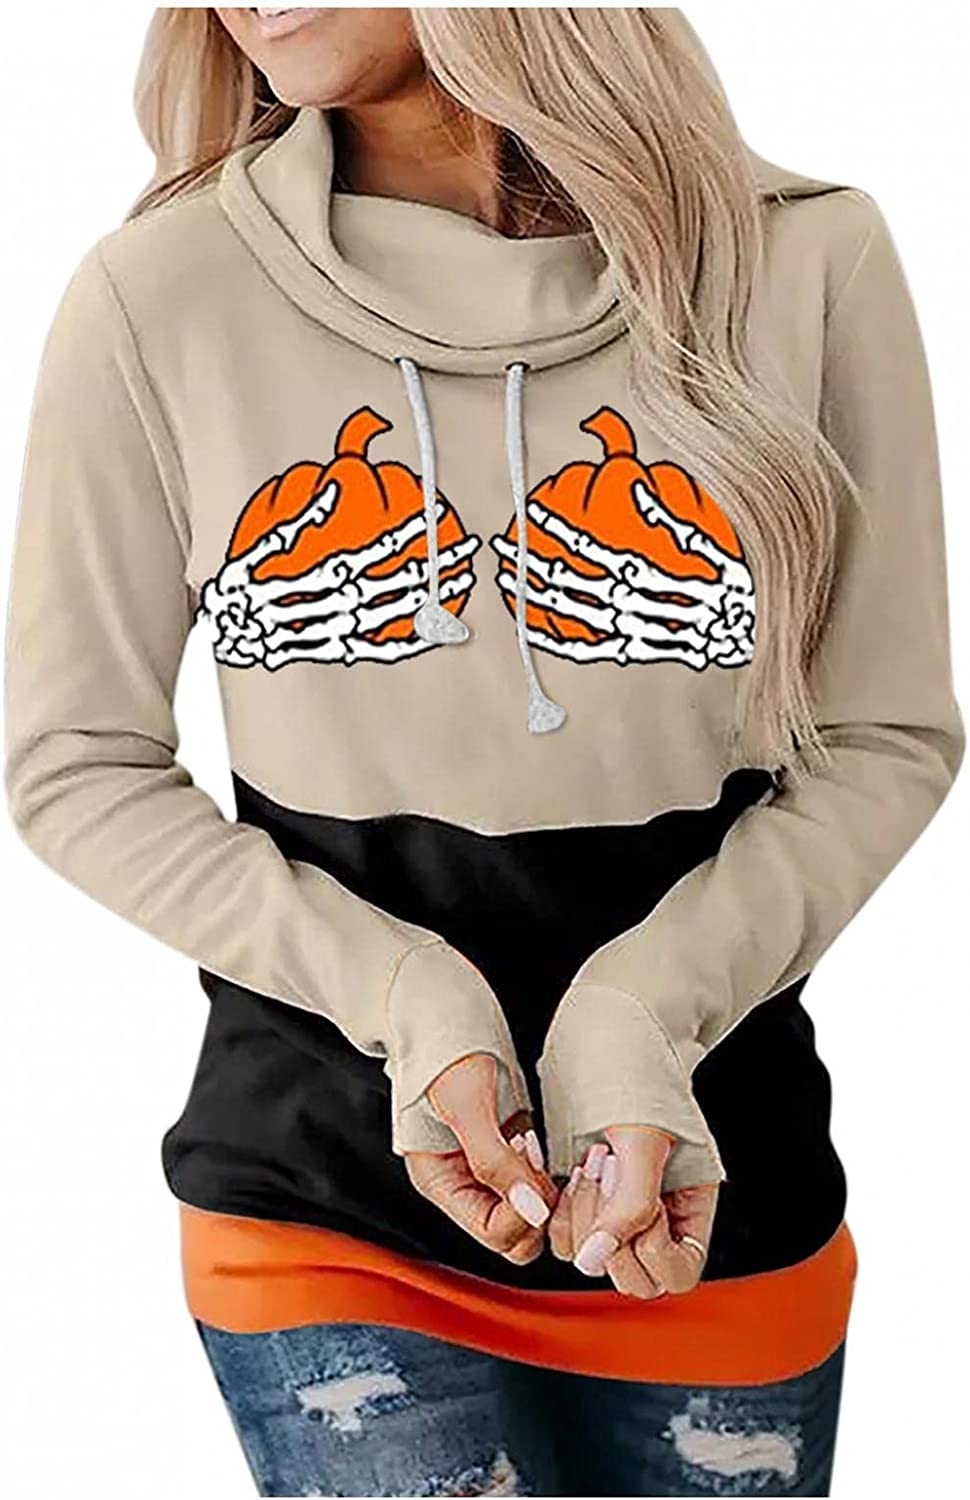 Womens Halloween Costumes, Pumpkin Graphic Long Sleeve Crewneck Pullover Tops Costumes Loose Sweaters Shirts